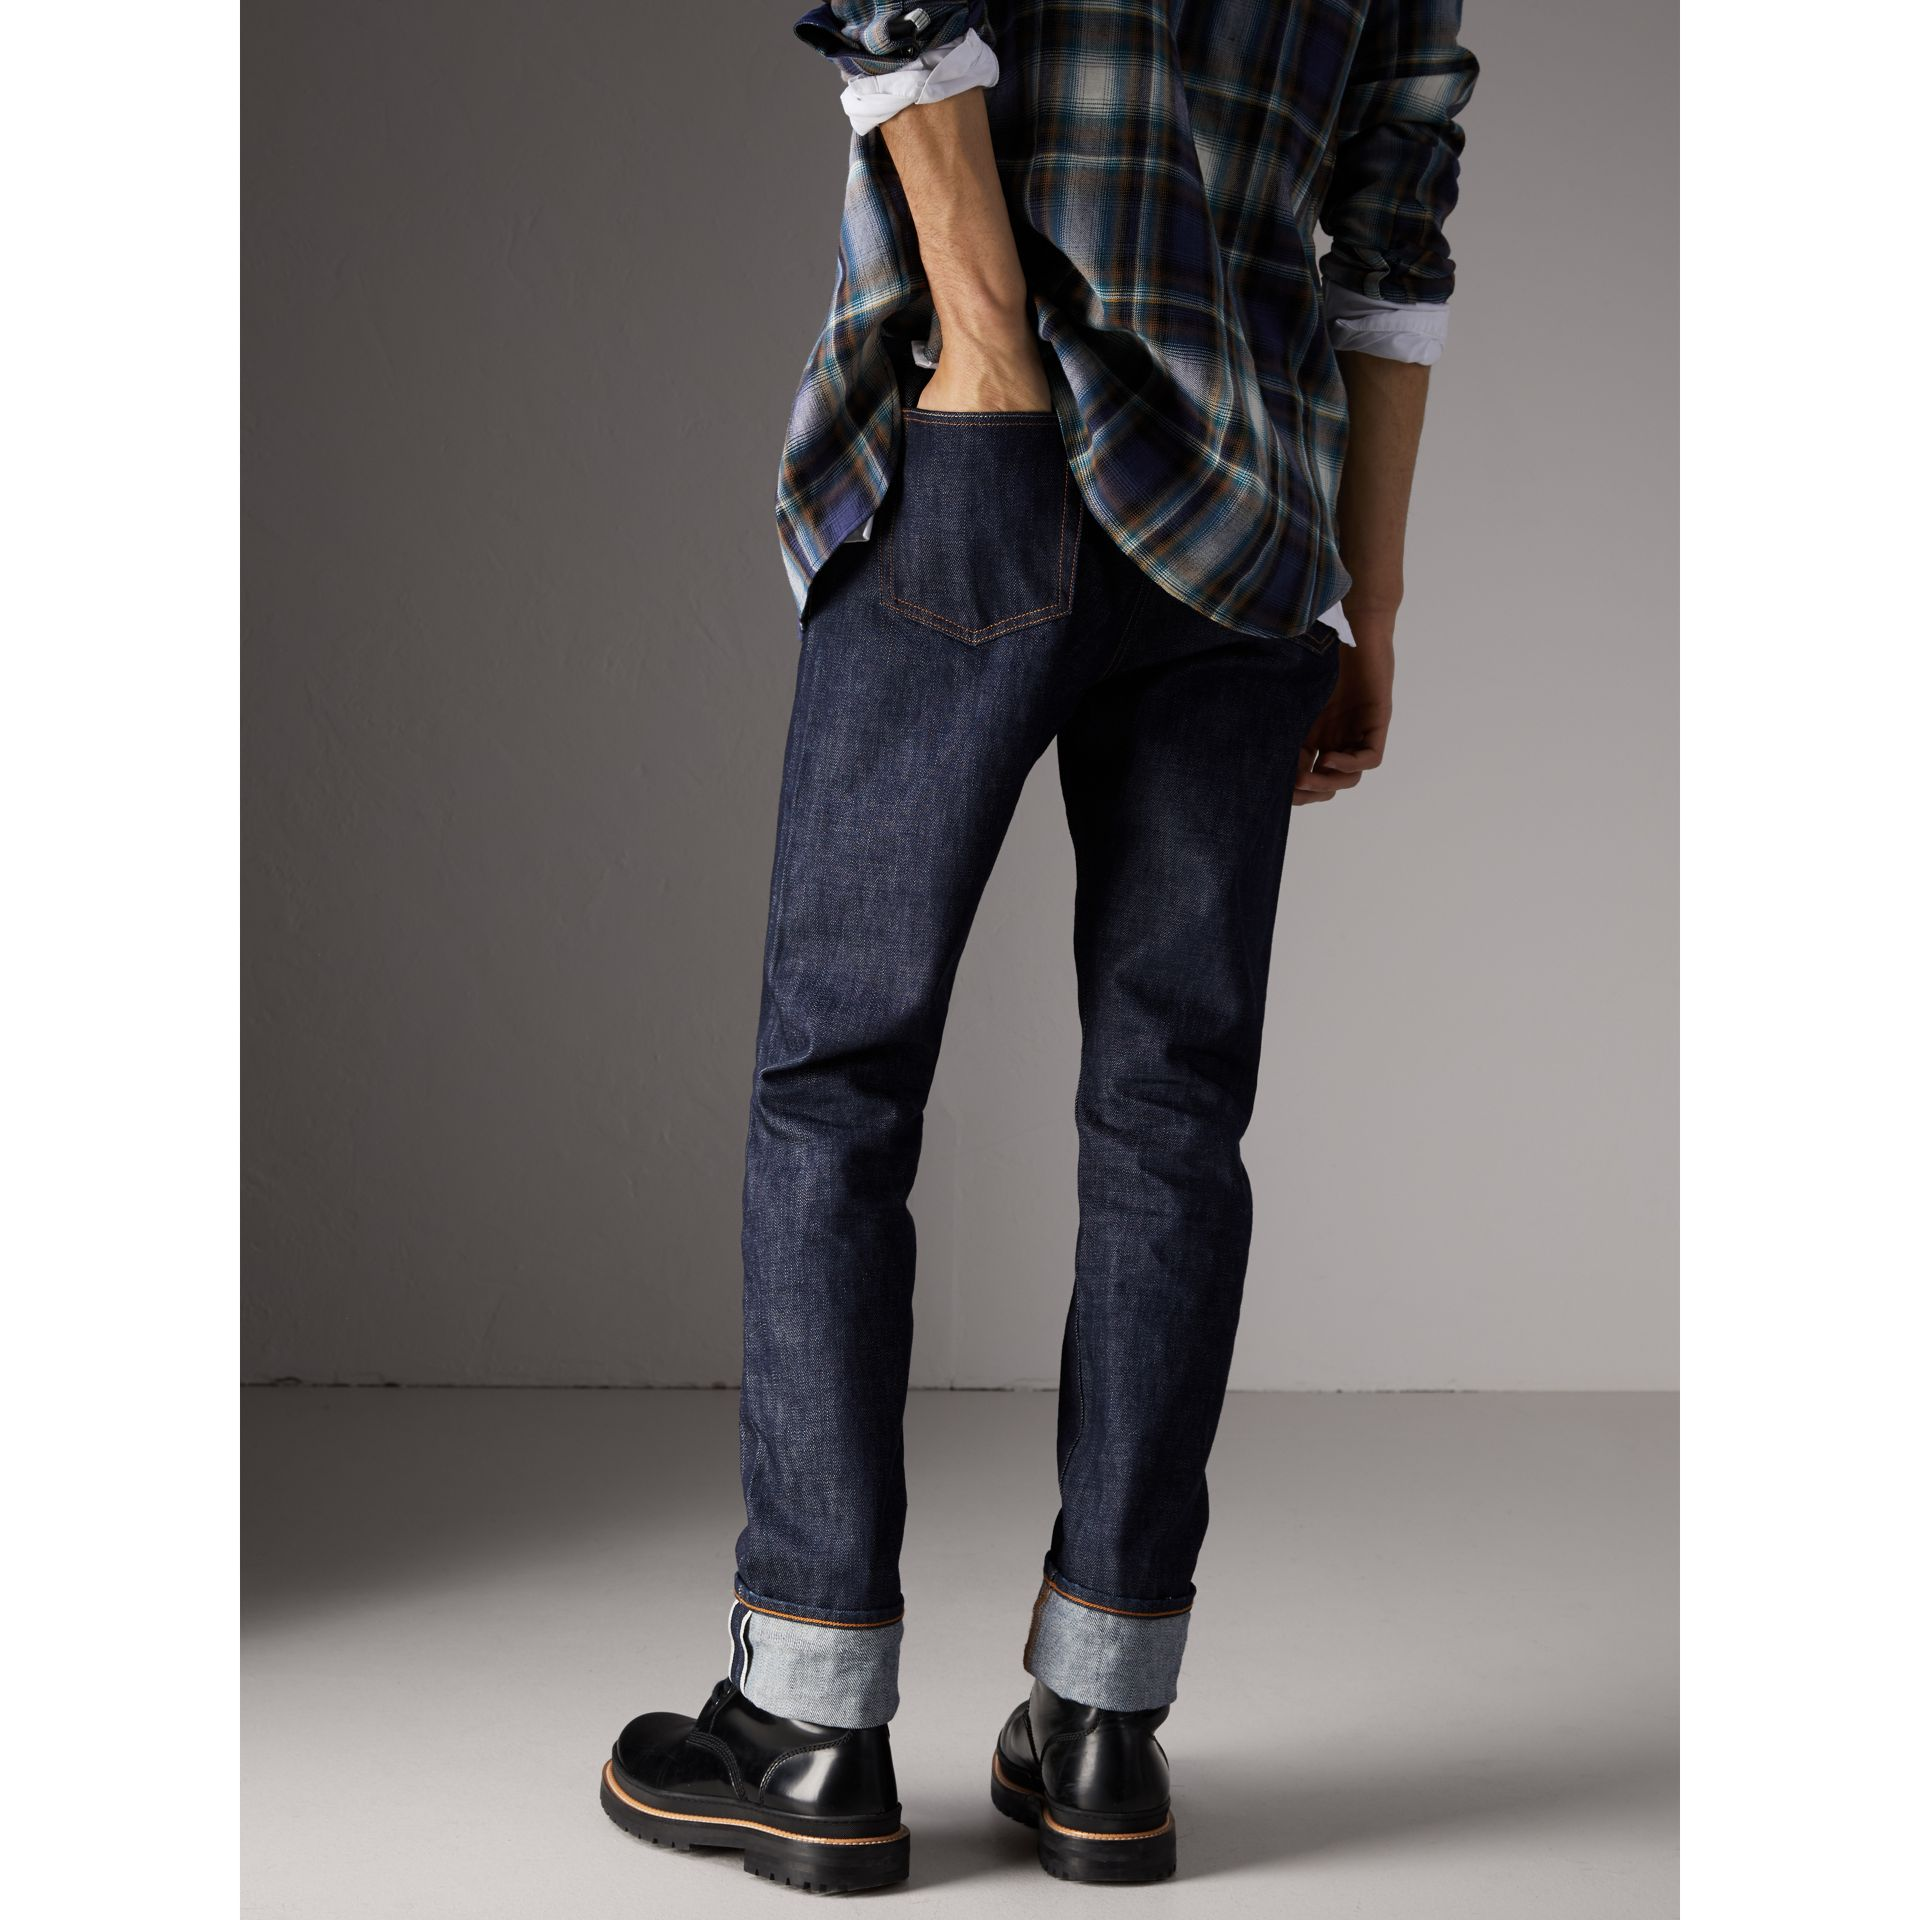 Relaxed Fit Japanese Selvedge Denim Jeans in Mid Indigo Blue - Men | Burberry Australia - gallery image 2